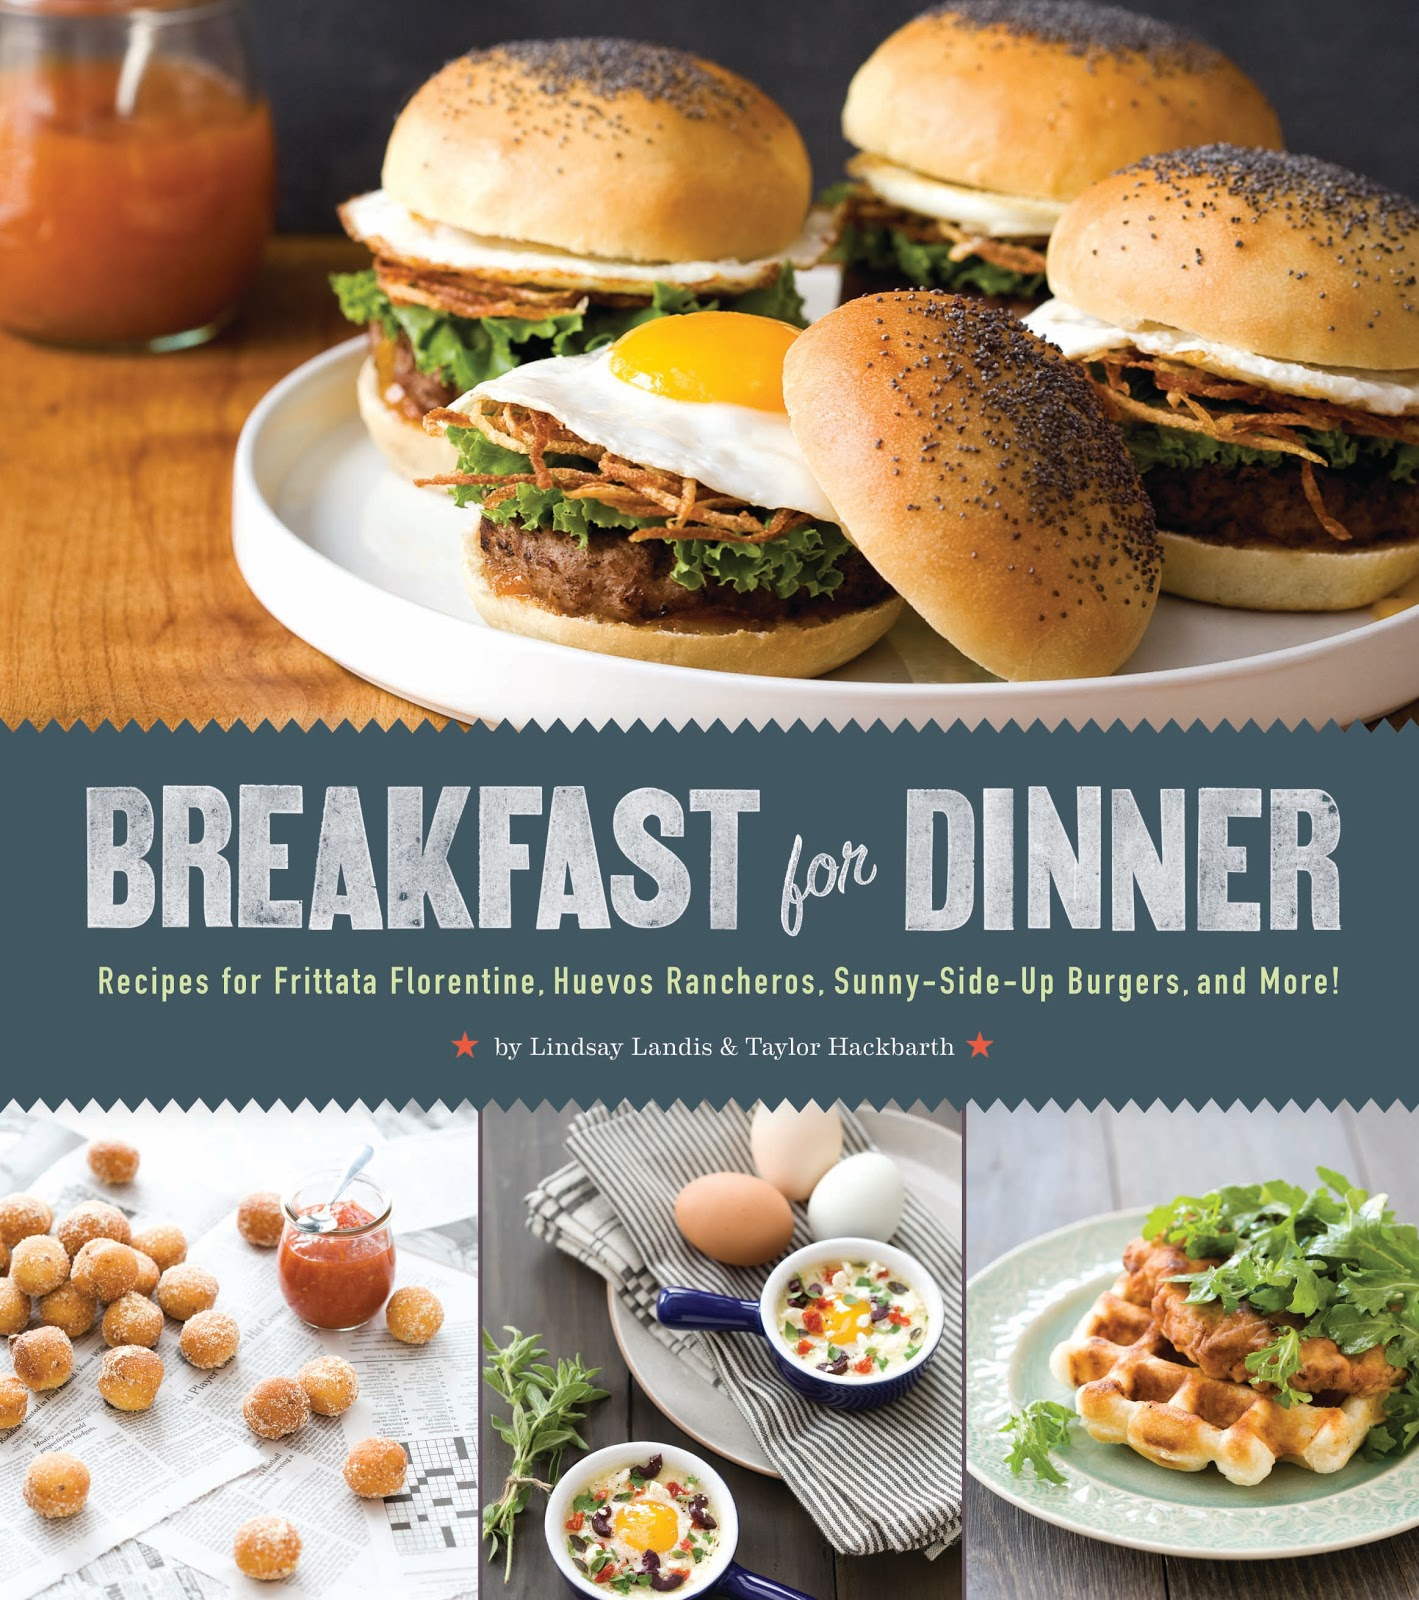 Breakfast for Dinner - a review